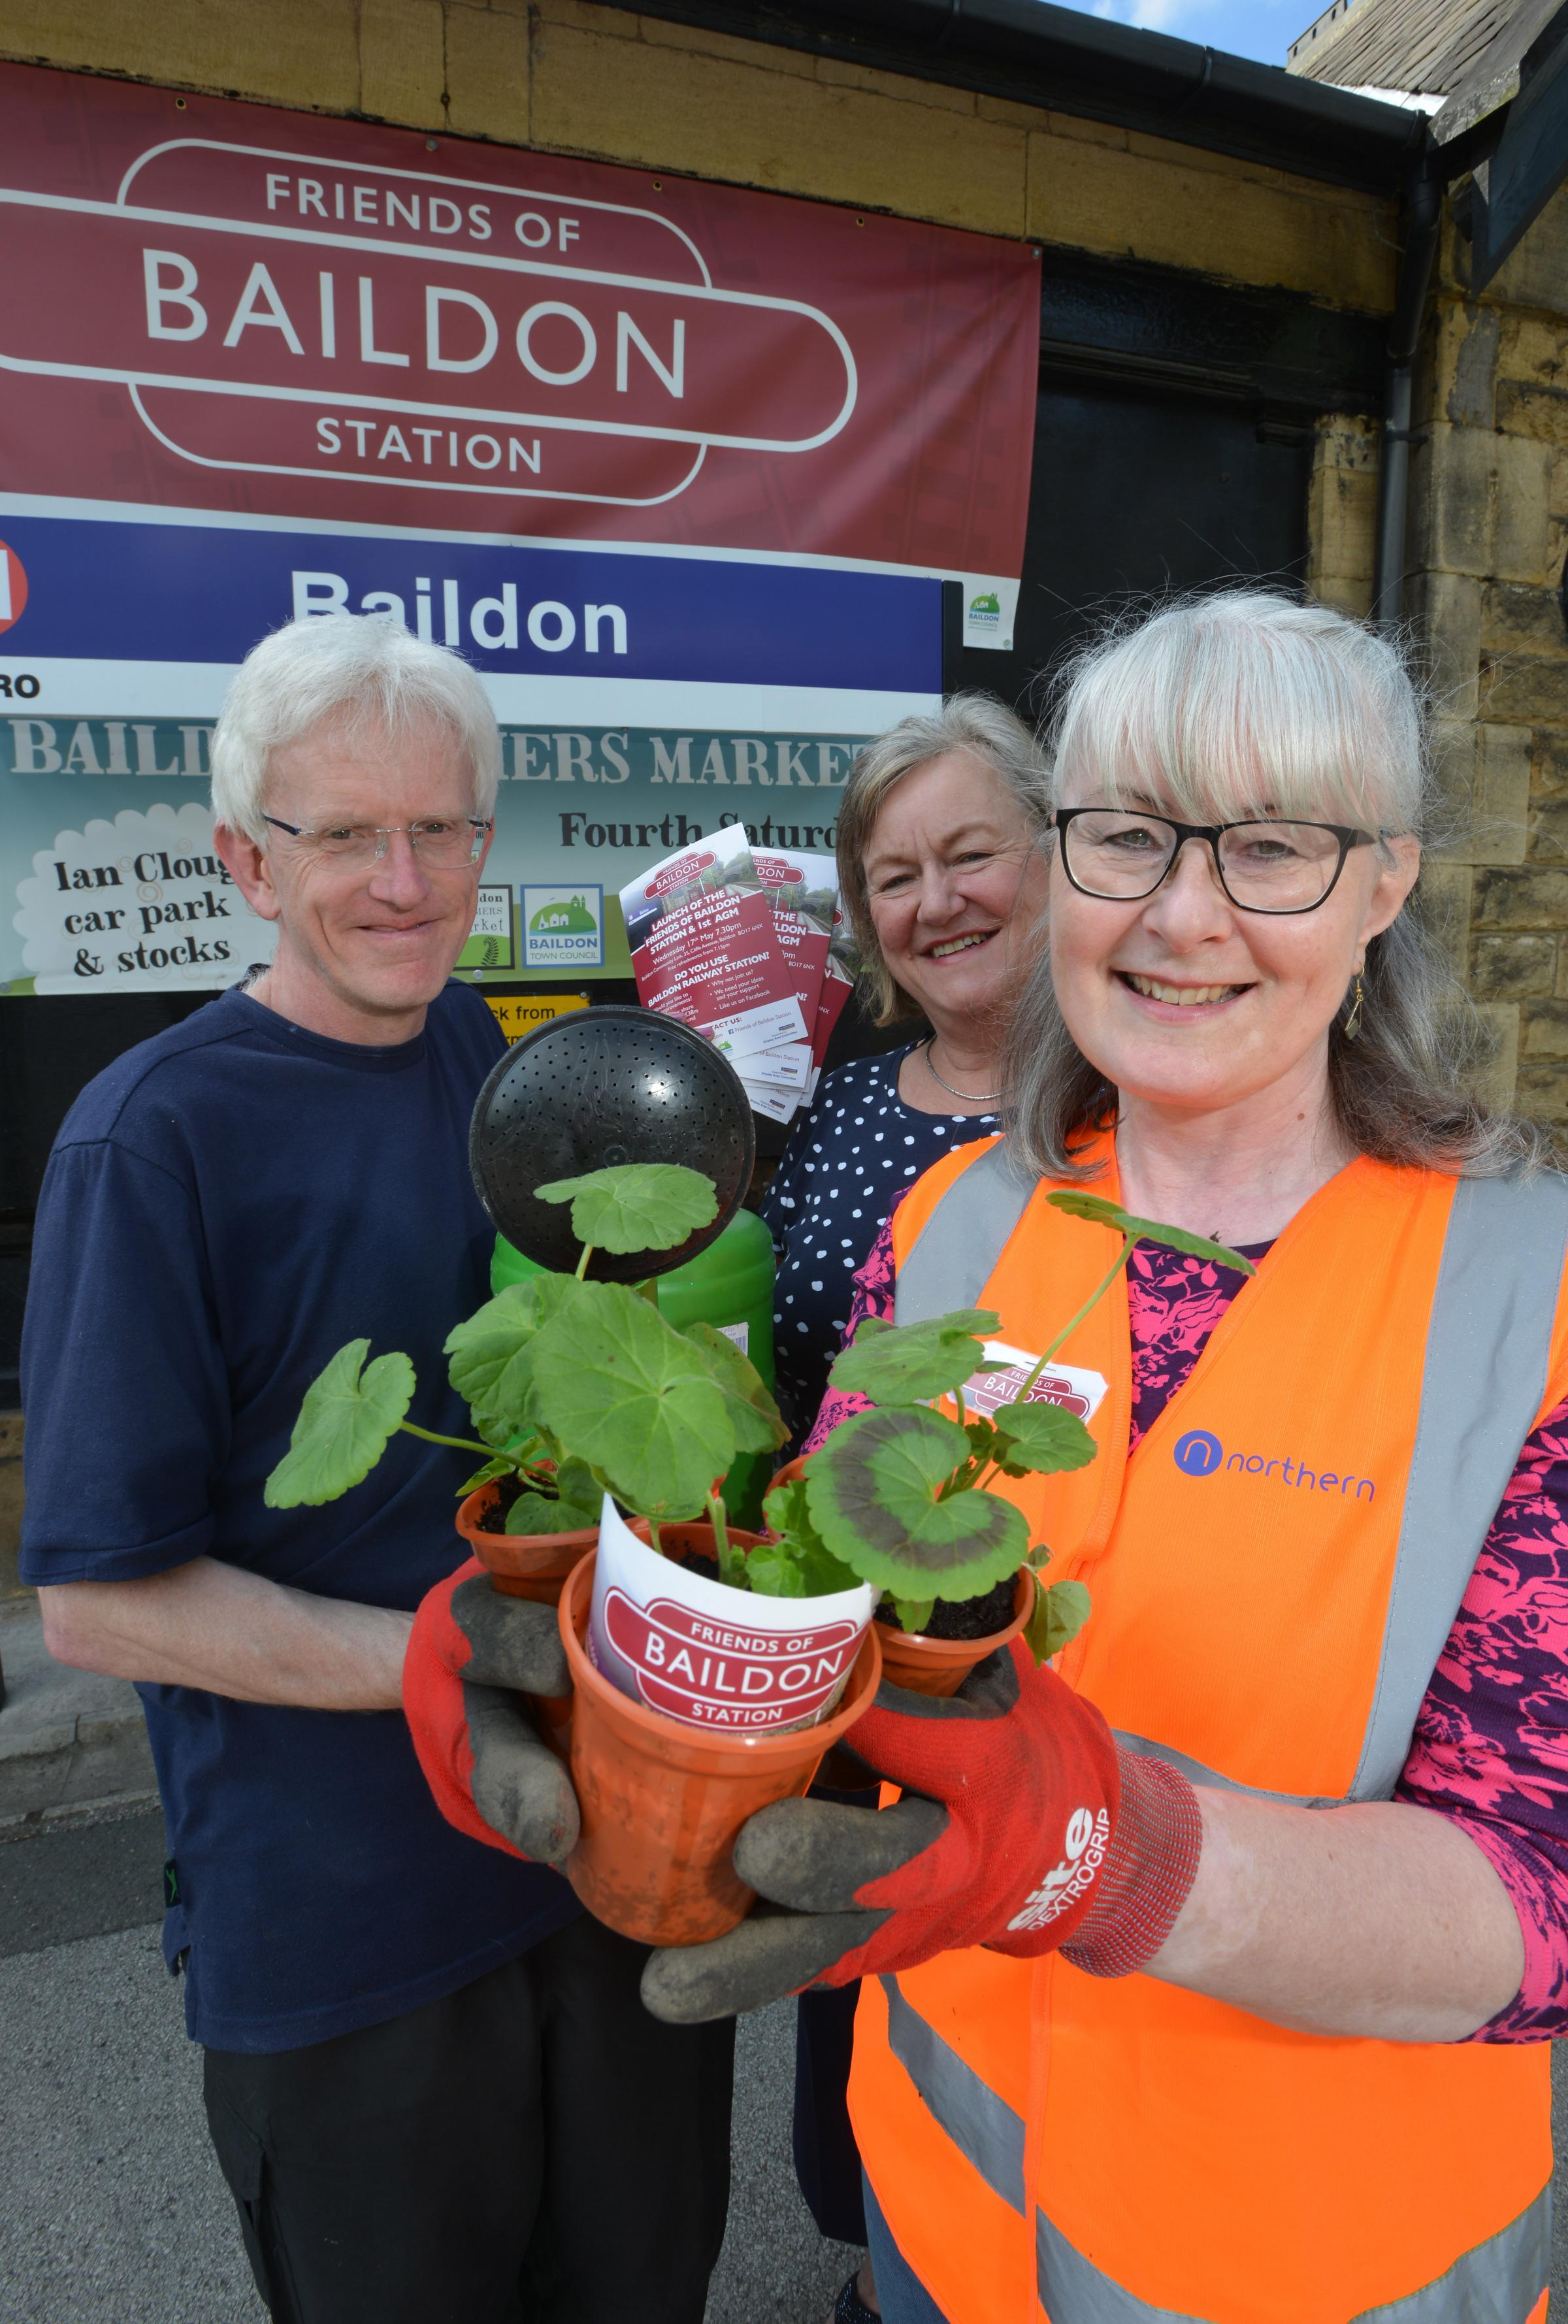 More than 50 people attended the first AGM of the Friends of Baildon Station group, including members James Craig, Gill Dixon, and Wendy Wolstenholme